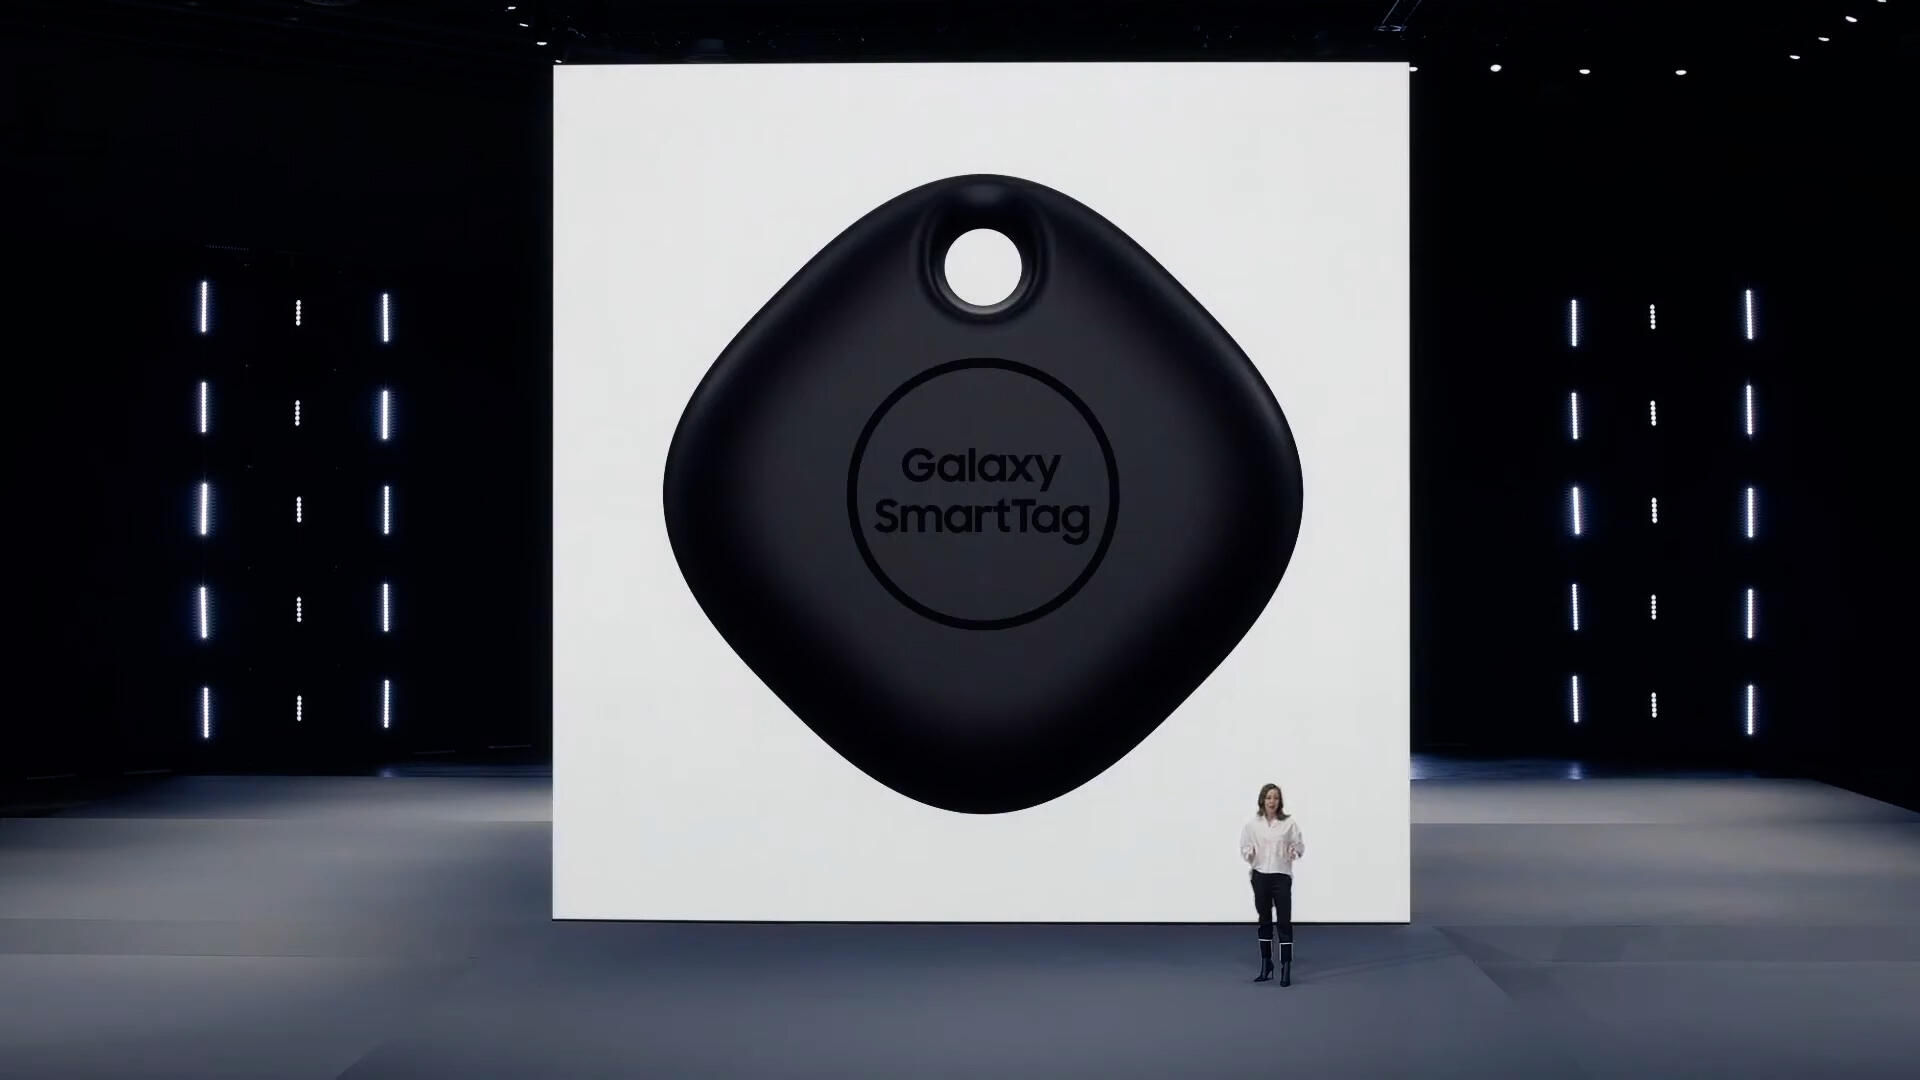 Video: Samsung debuts SmartTags object trackers